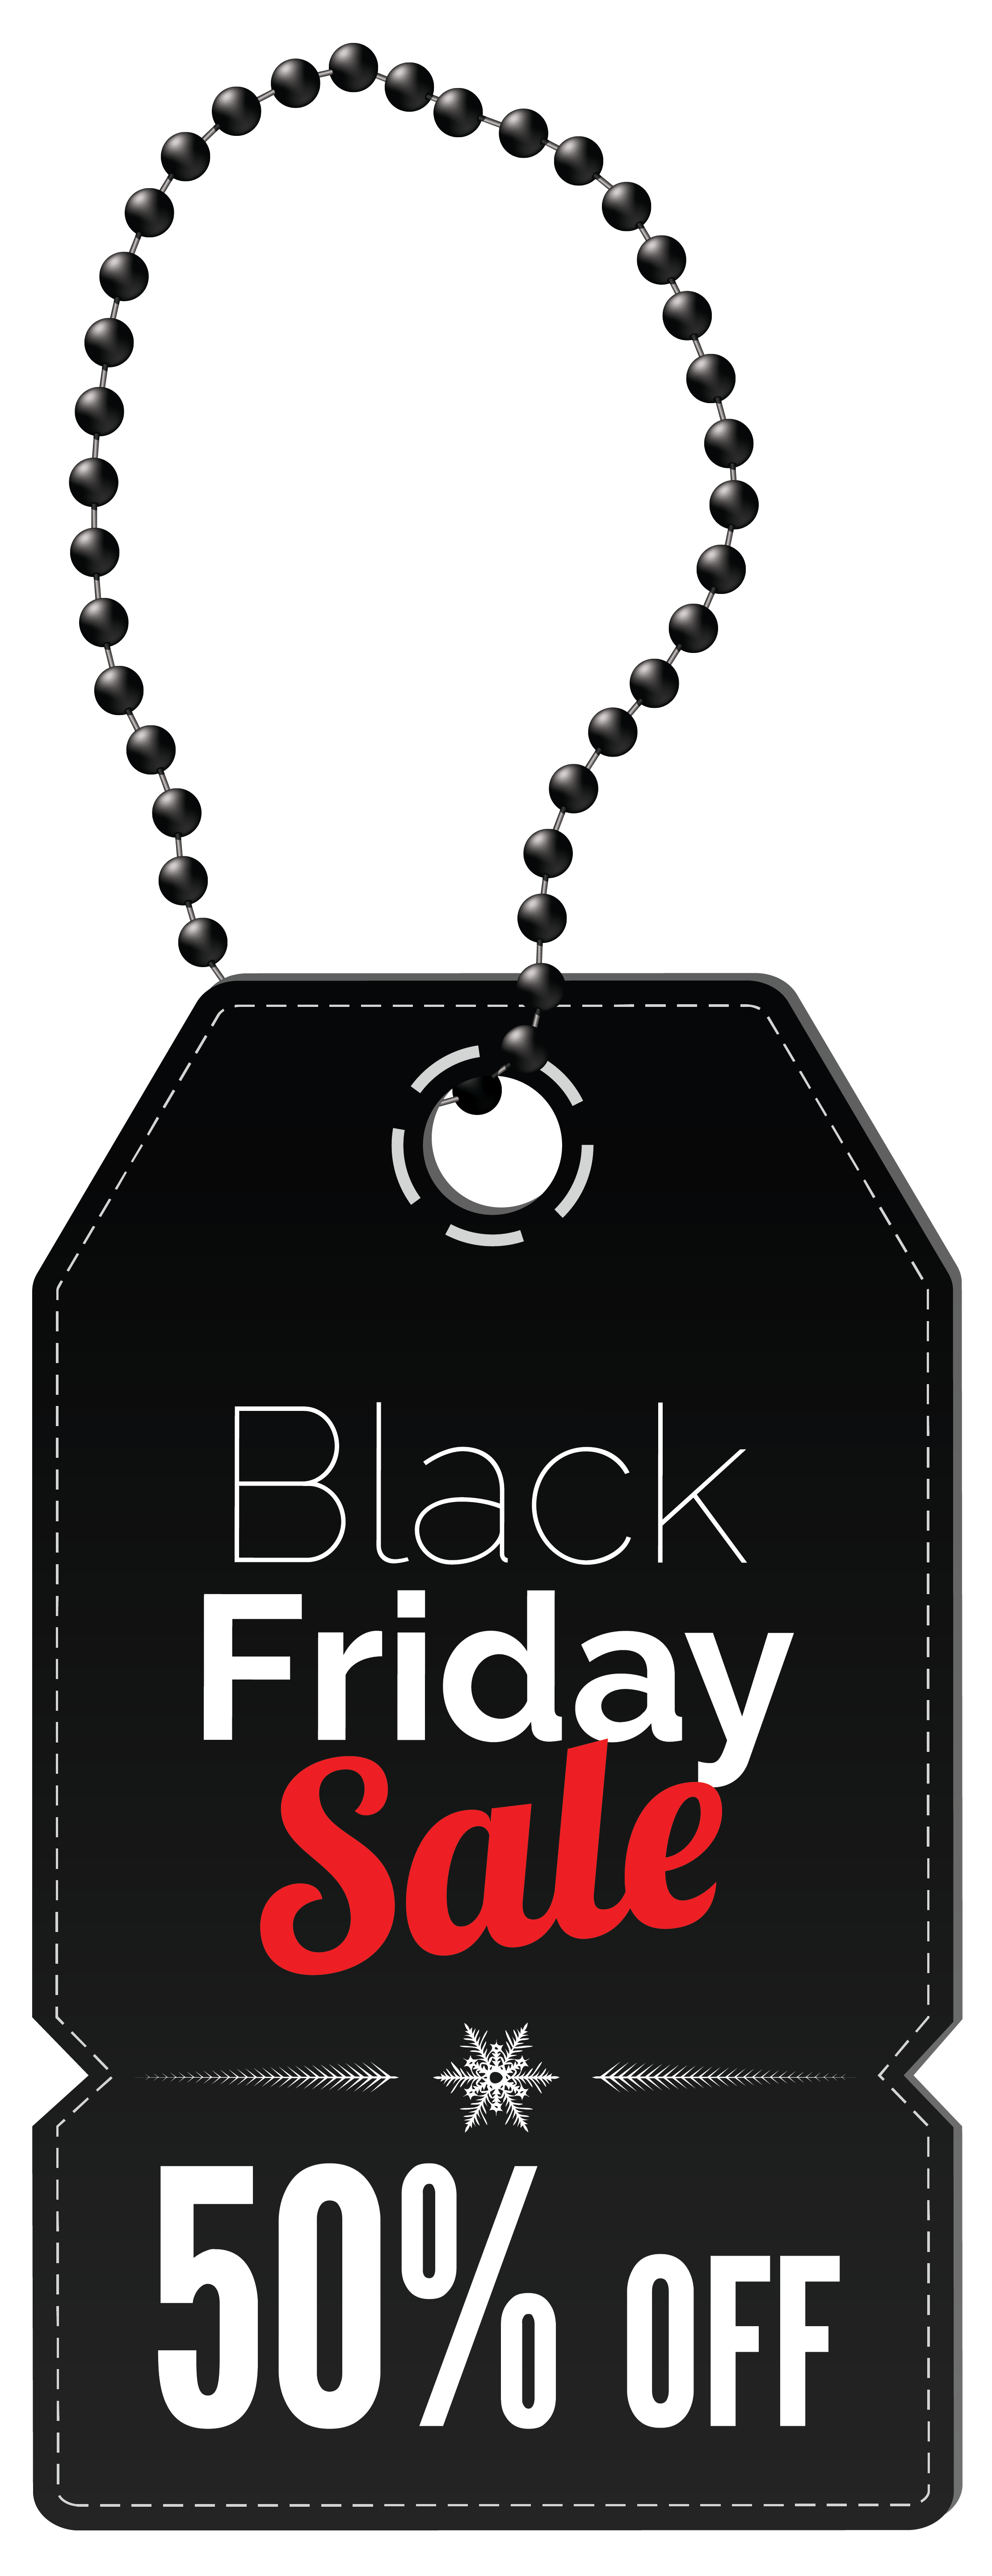 Black Friday 50% OFF Tag PNG Clipart Image.